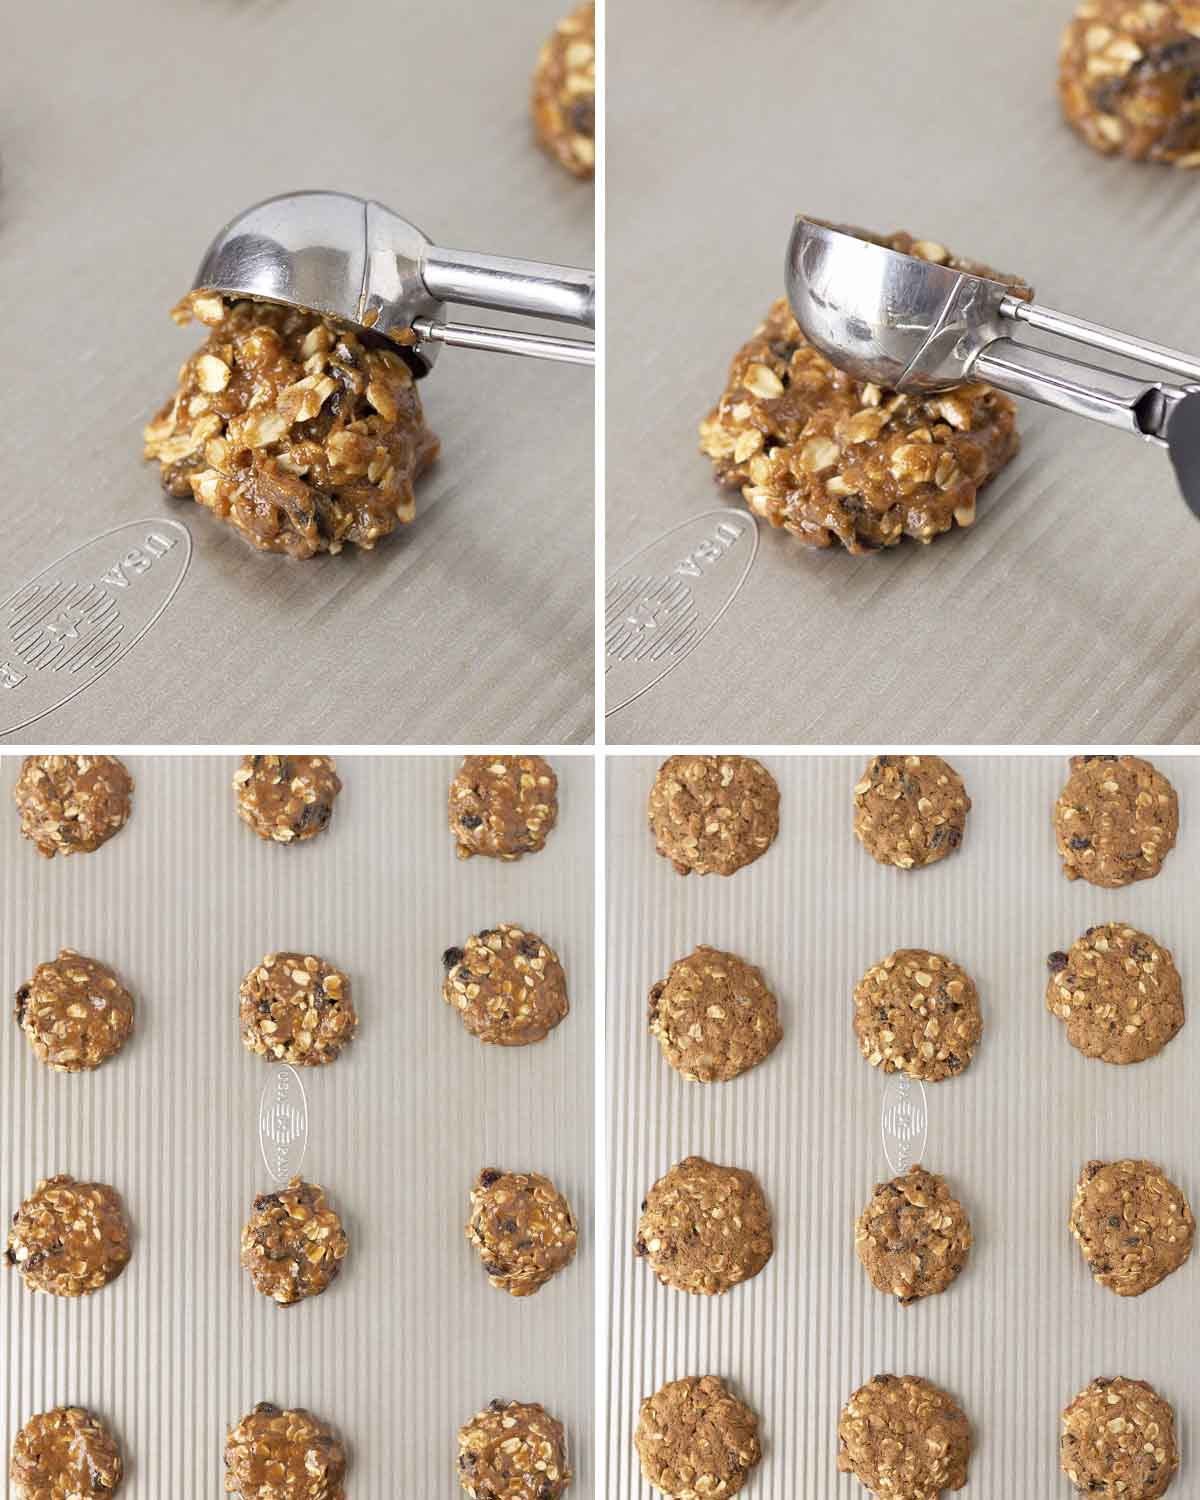 A collage of four images showing the sequence of steps needed to make dairy-free oatmeal cookies.